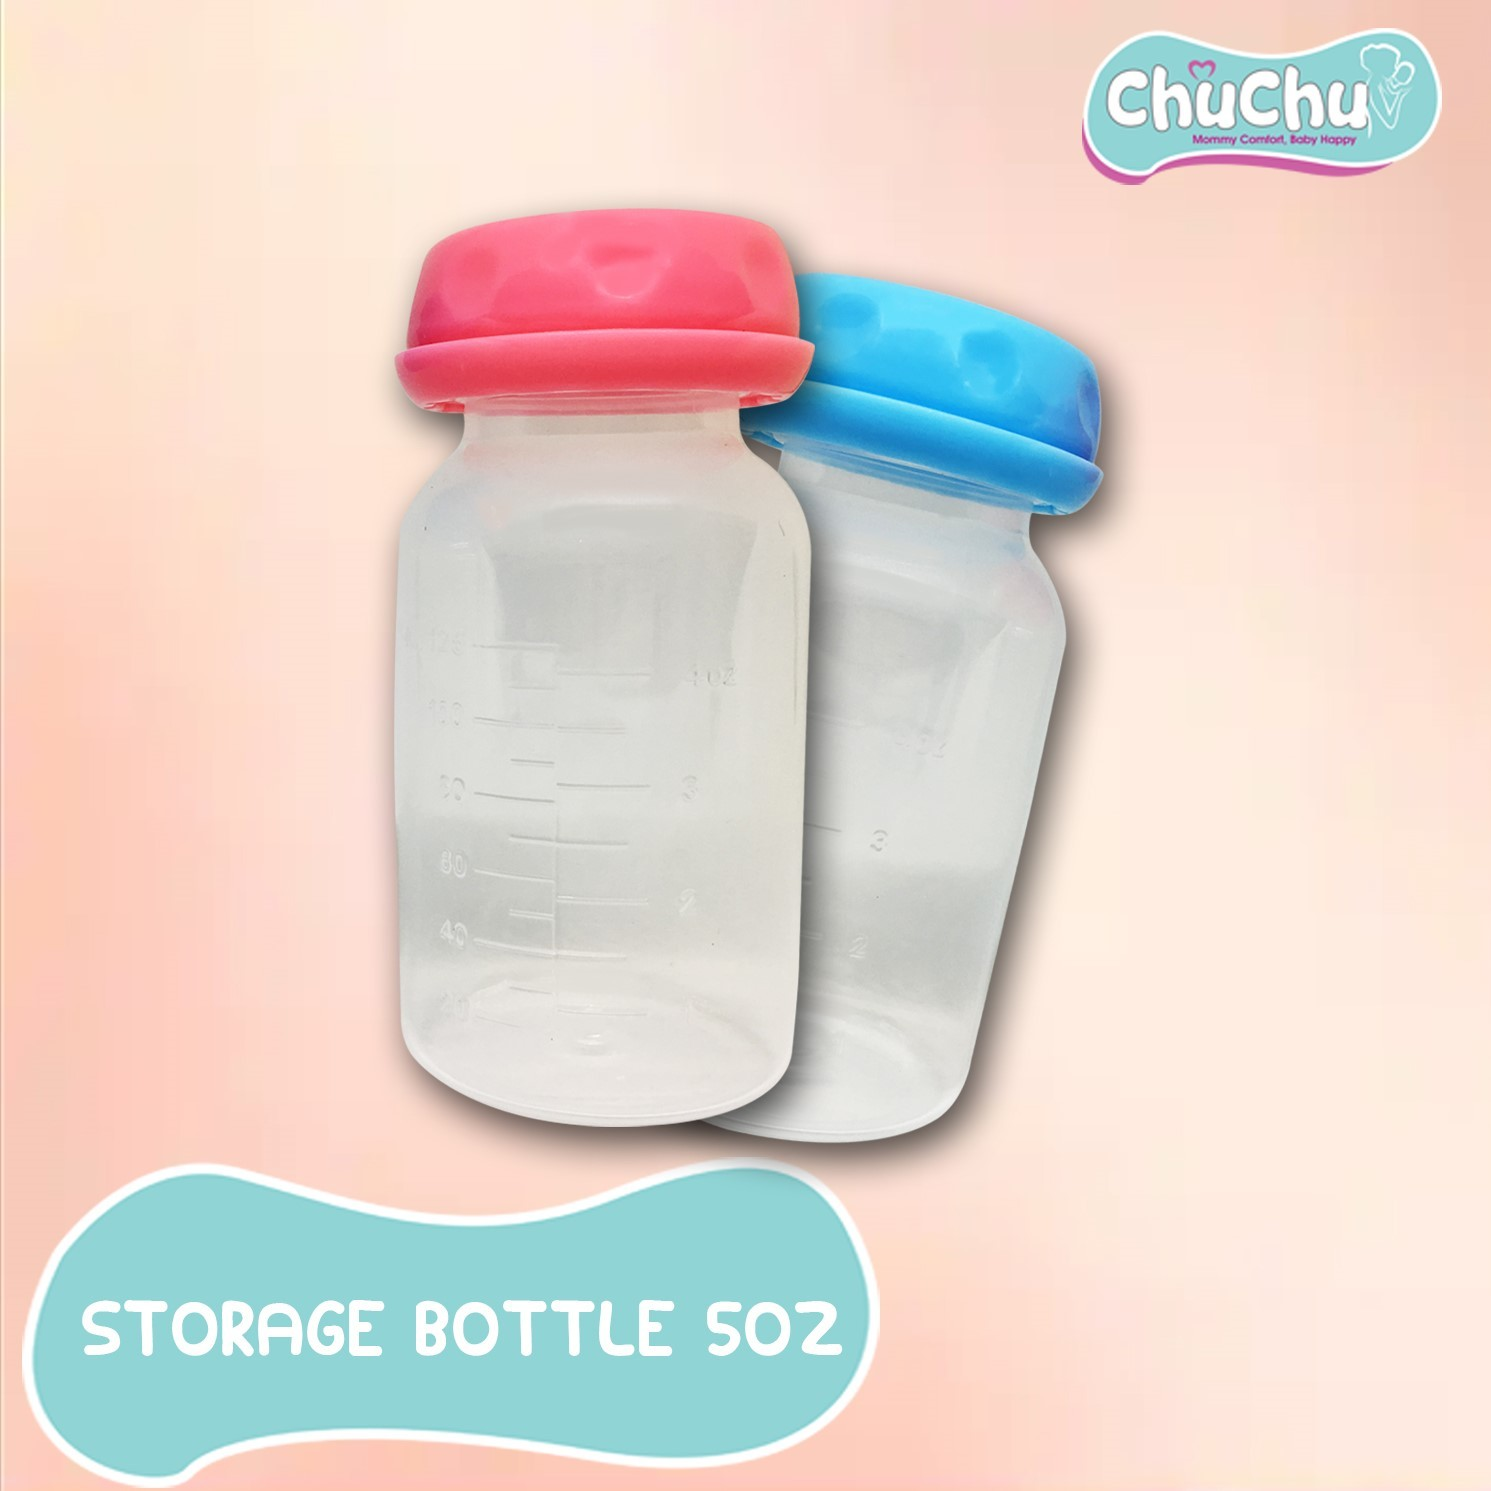 Storage Bottle 5oz.jpg